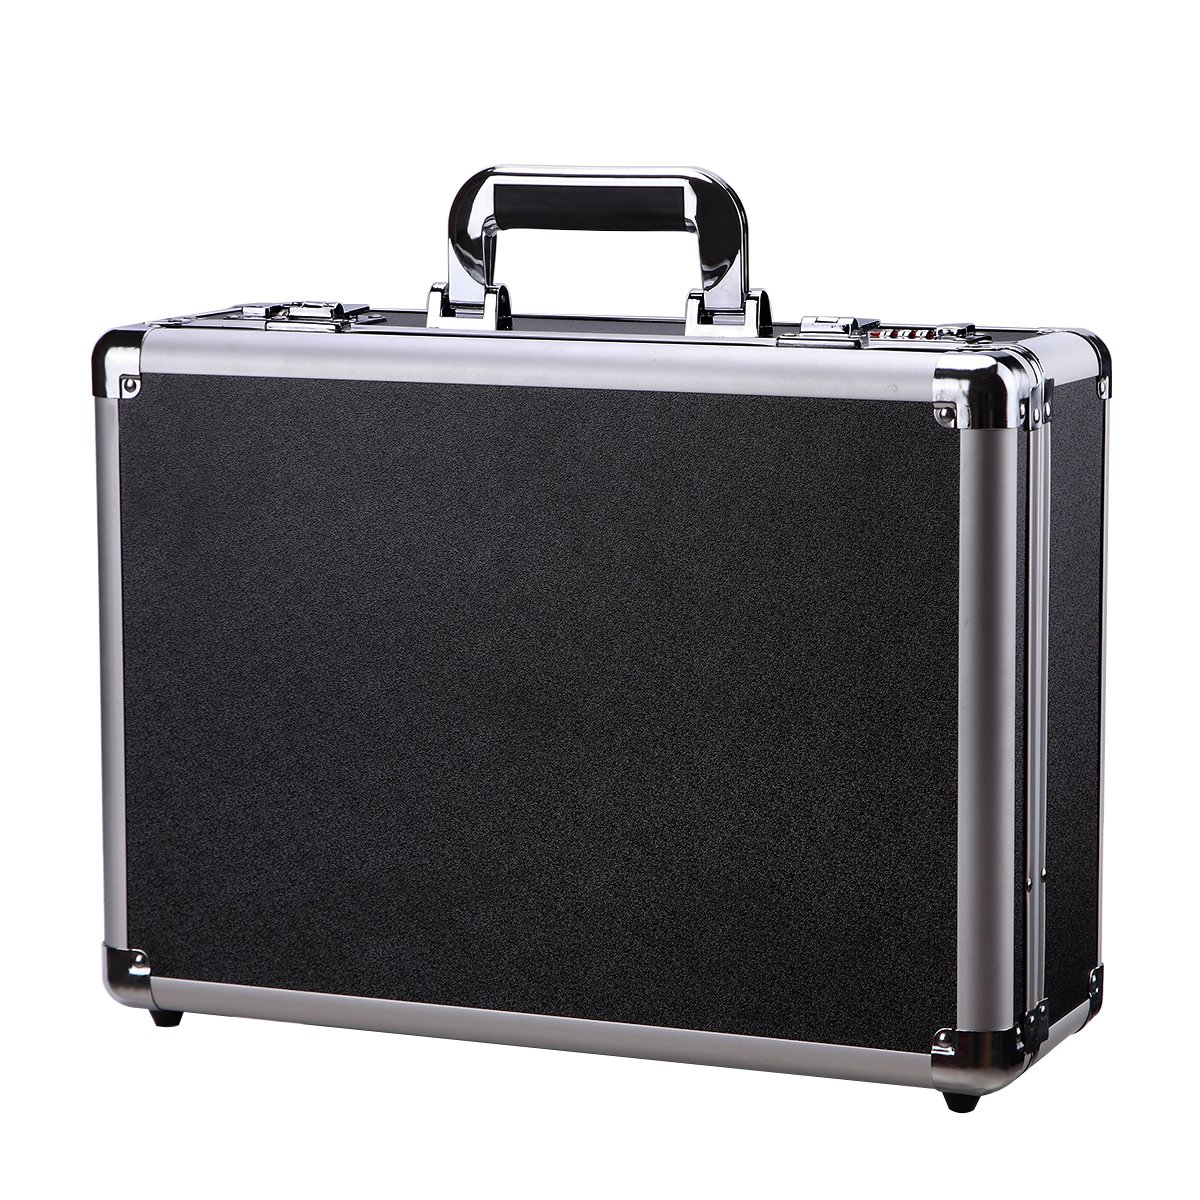 Black Aluminum Case Flight Case Tool Box Silver Metal Frame Hard Carrying Case with Dual Locks